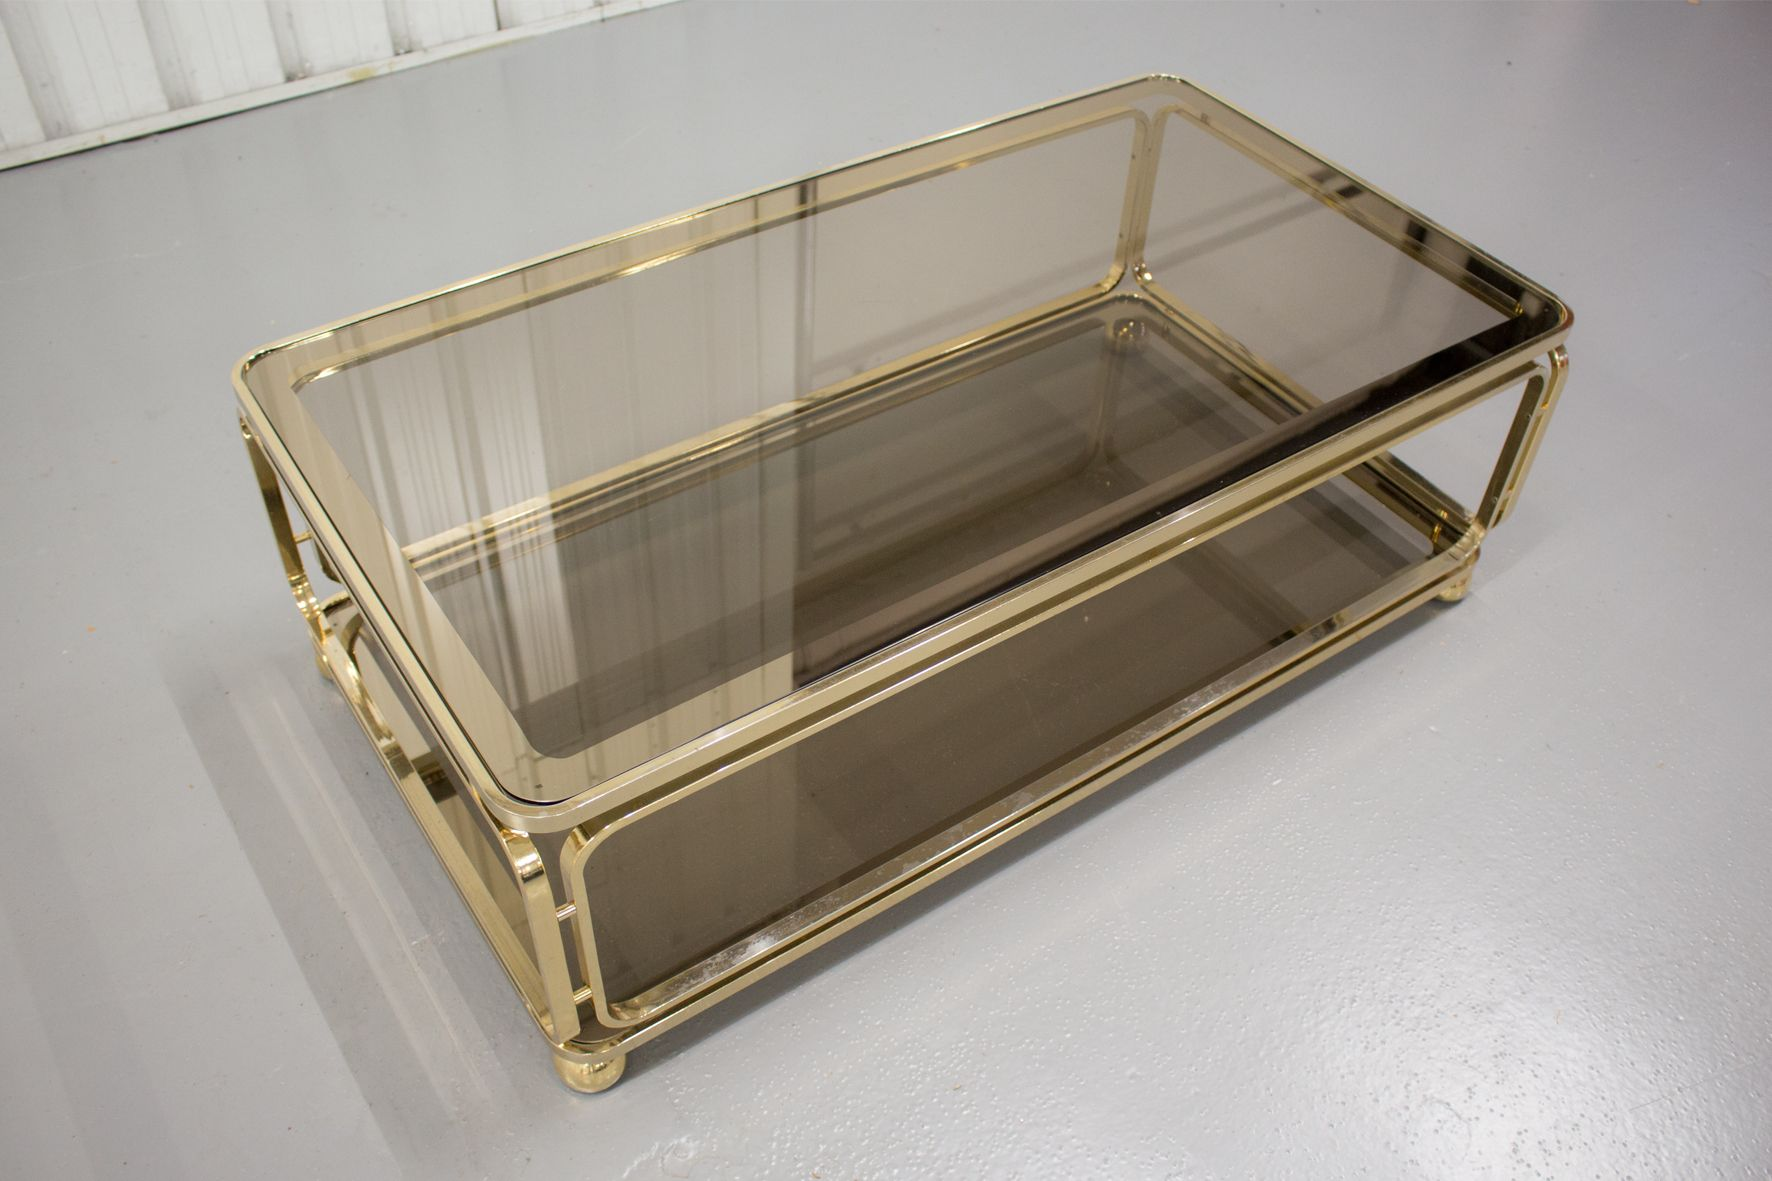 Vintage Brass Coffee Table with Glass & Mirror Inlay for sale at